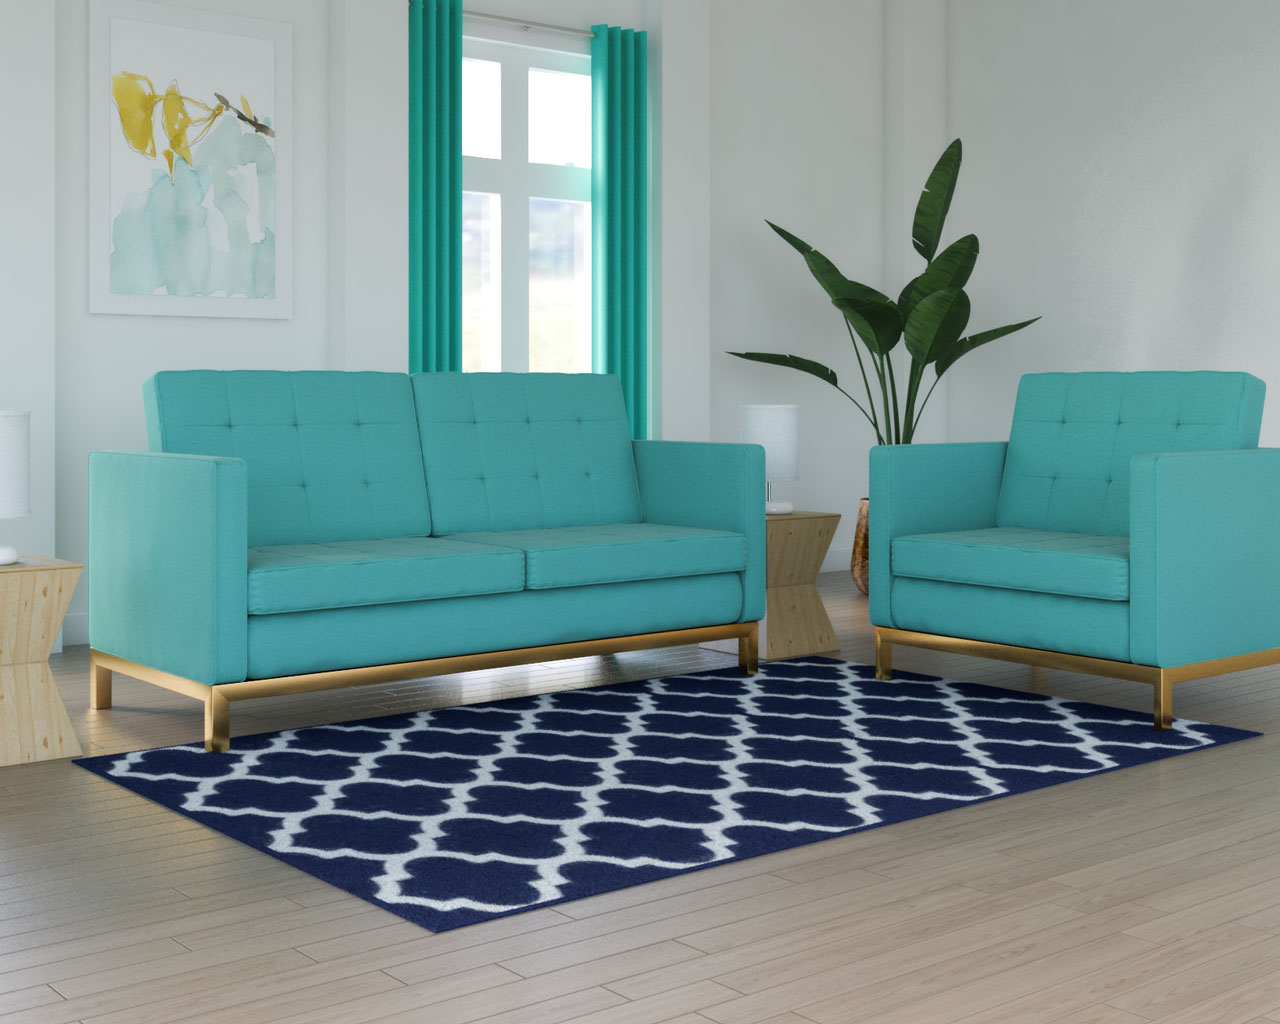 What color rug with teal couch : Navy blue